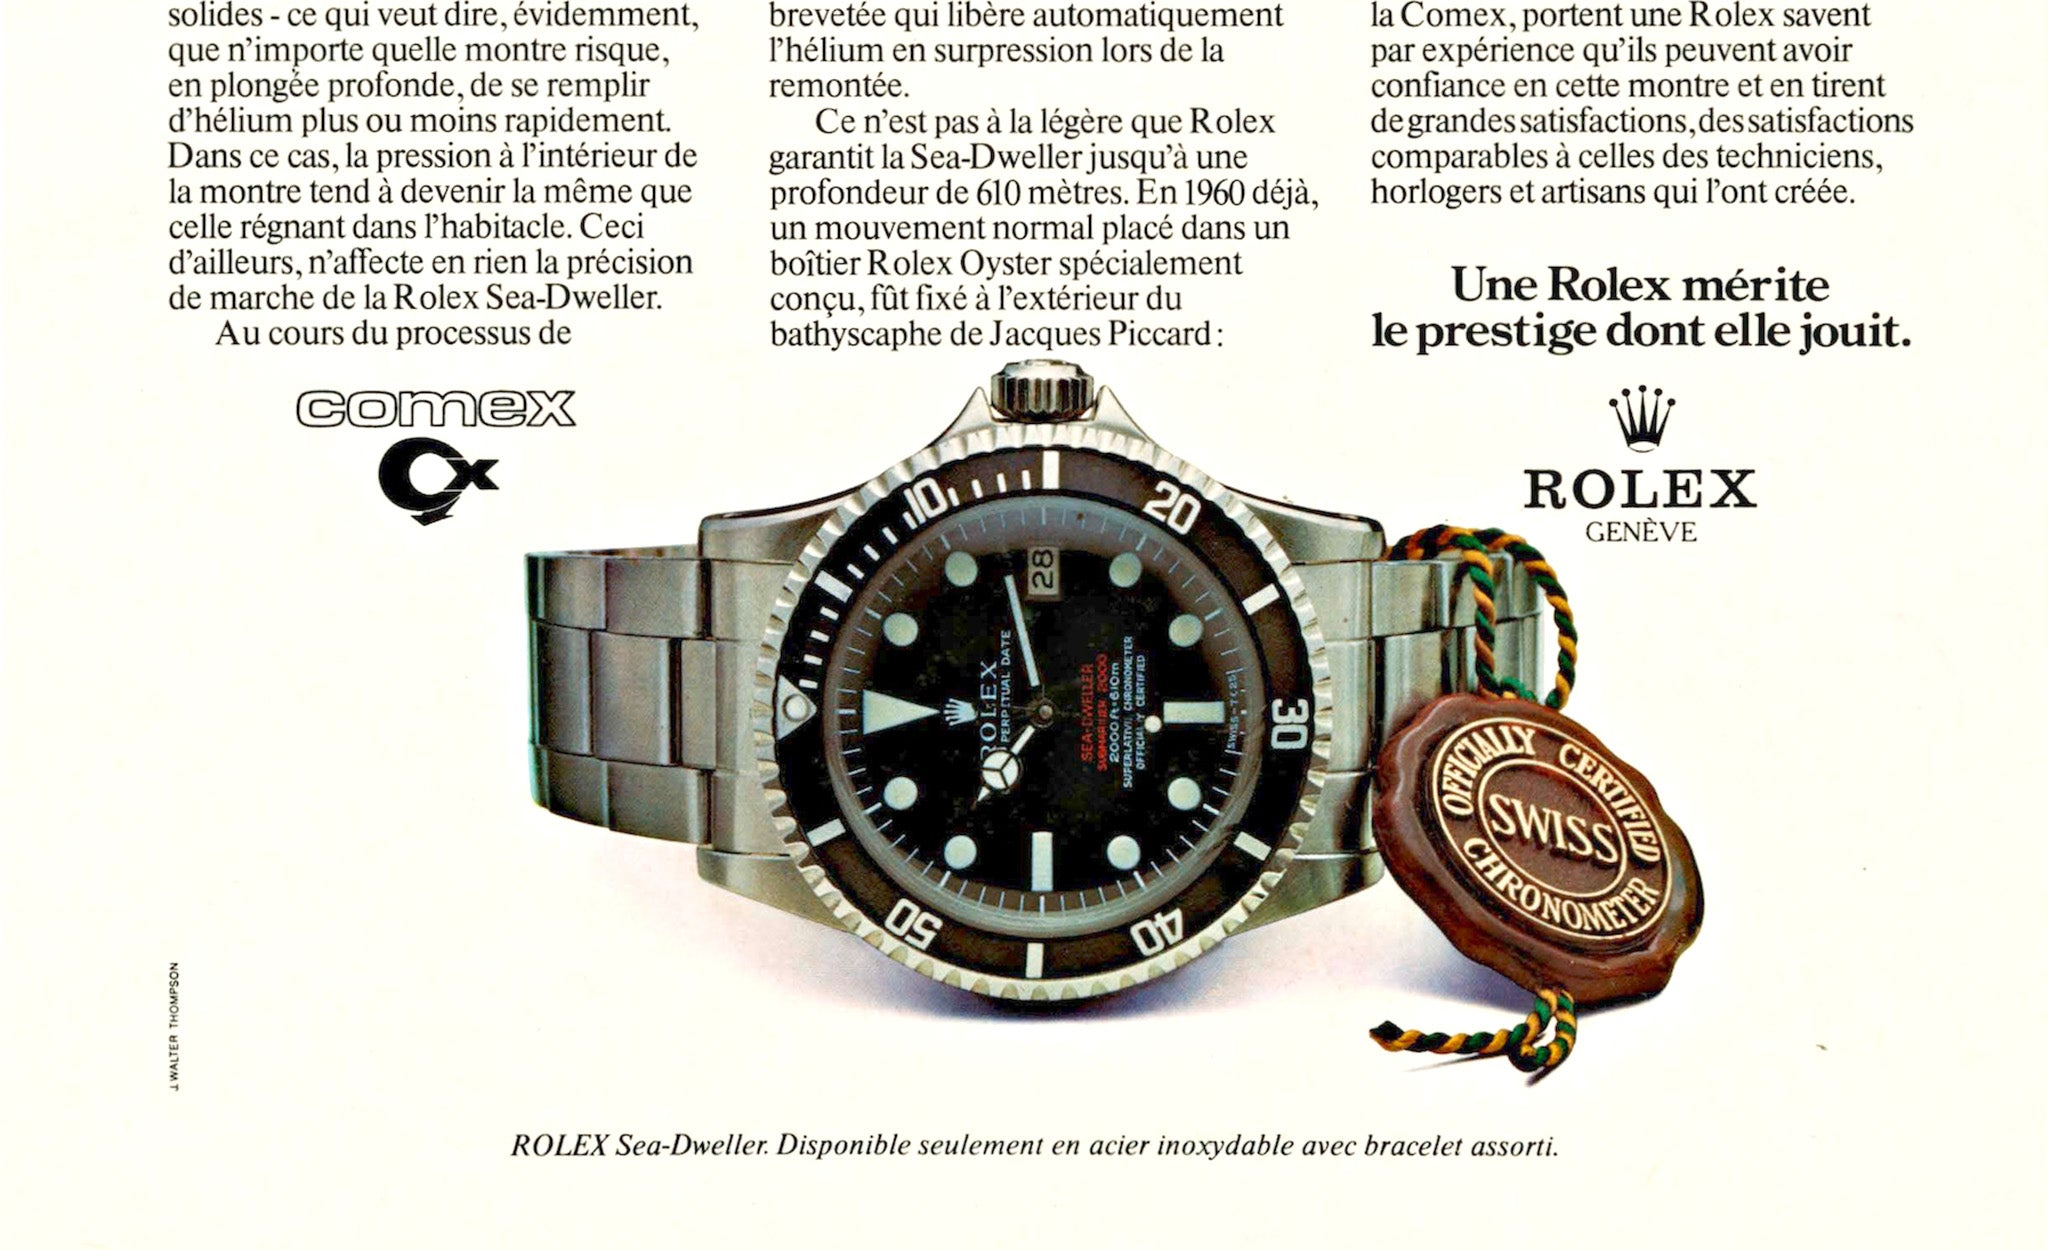 Rolex print advertisement showing double red sea-dweller and partnership with COMEX for A Collected Man London